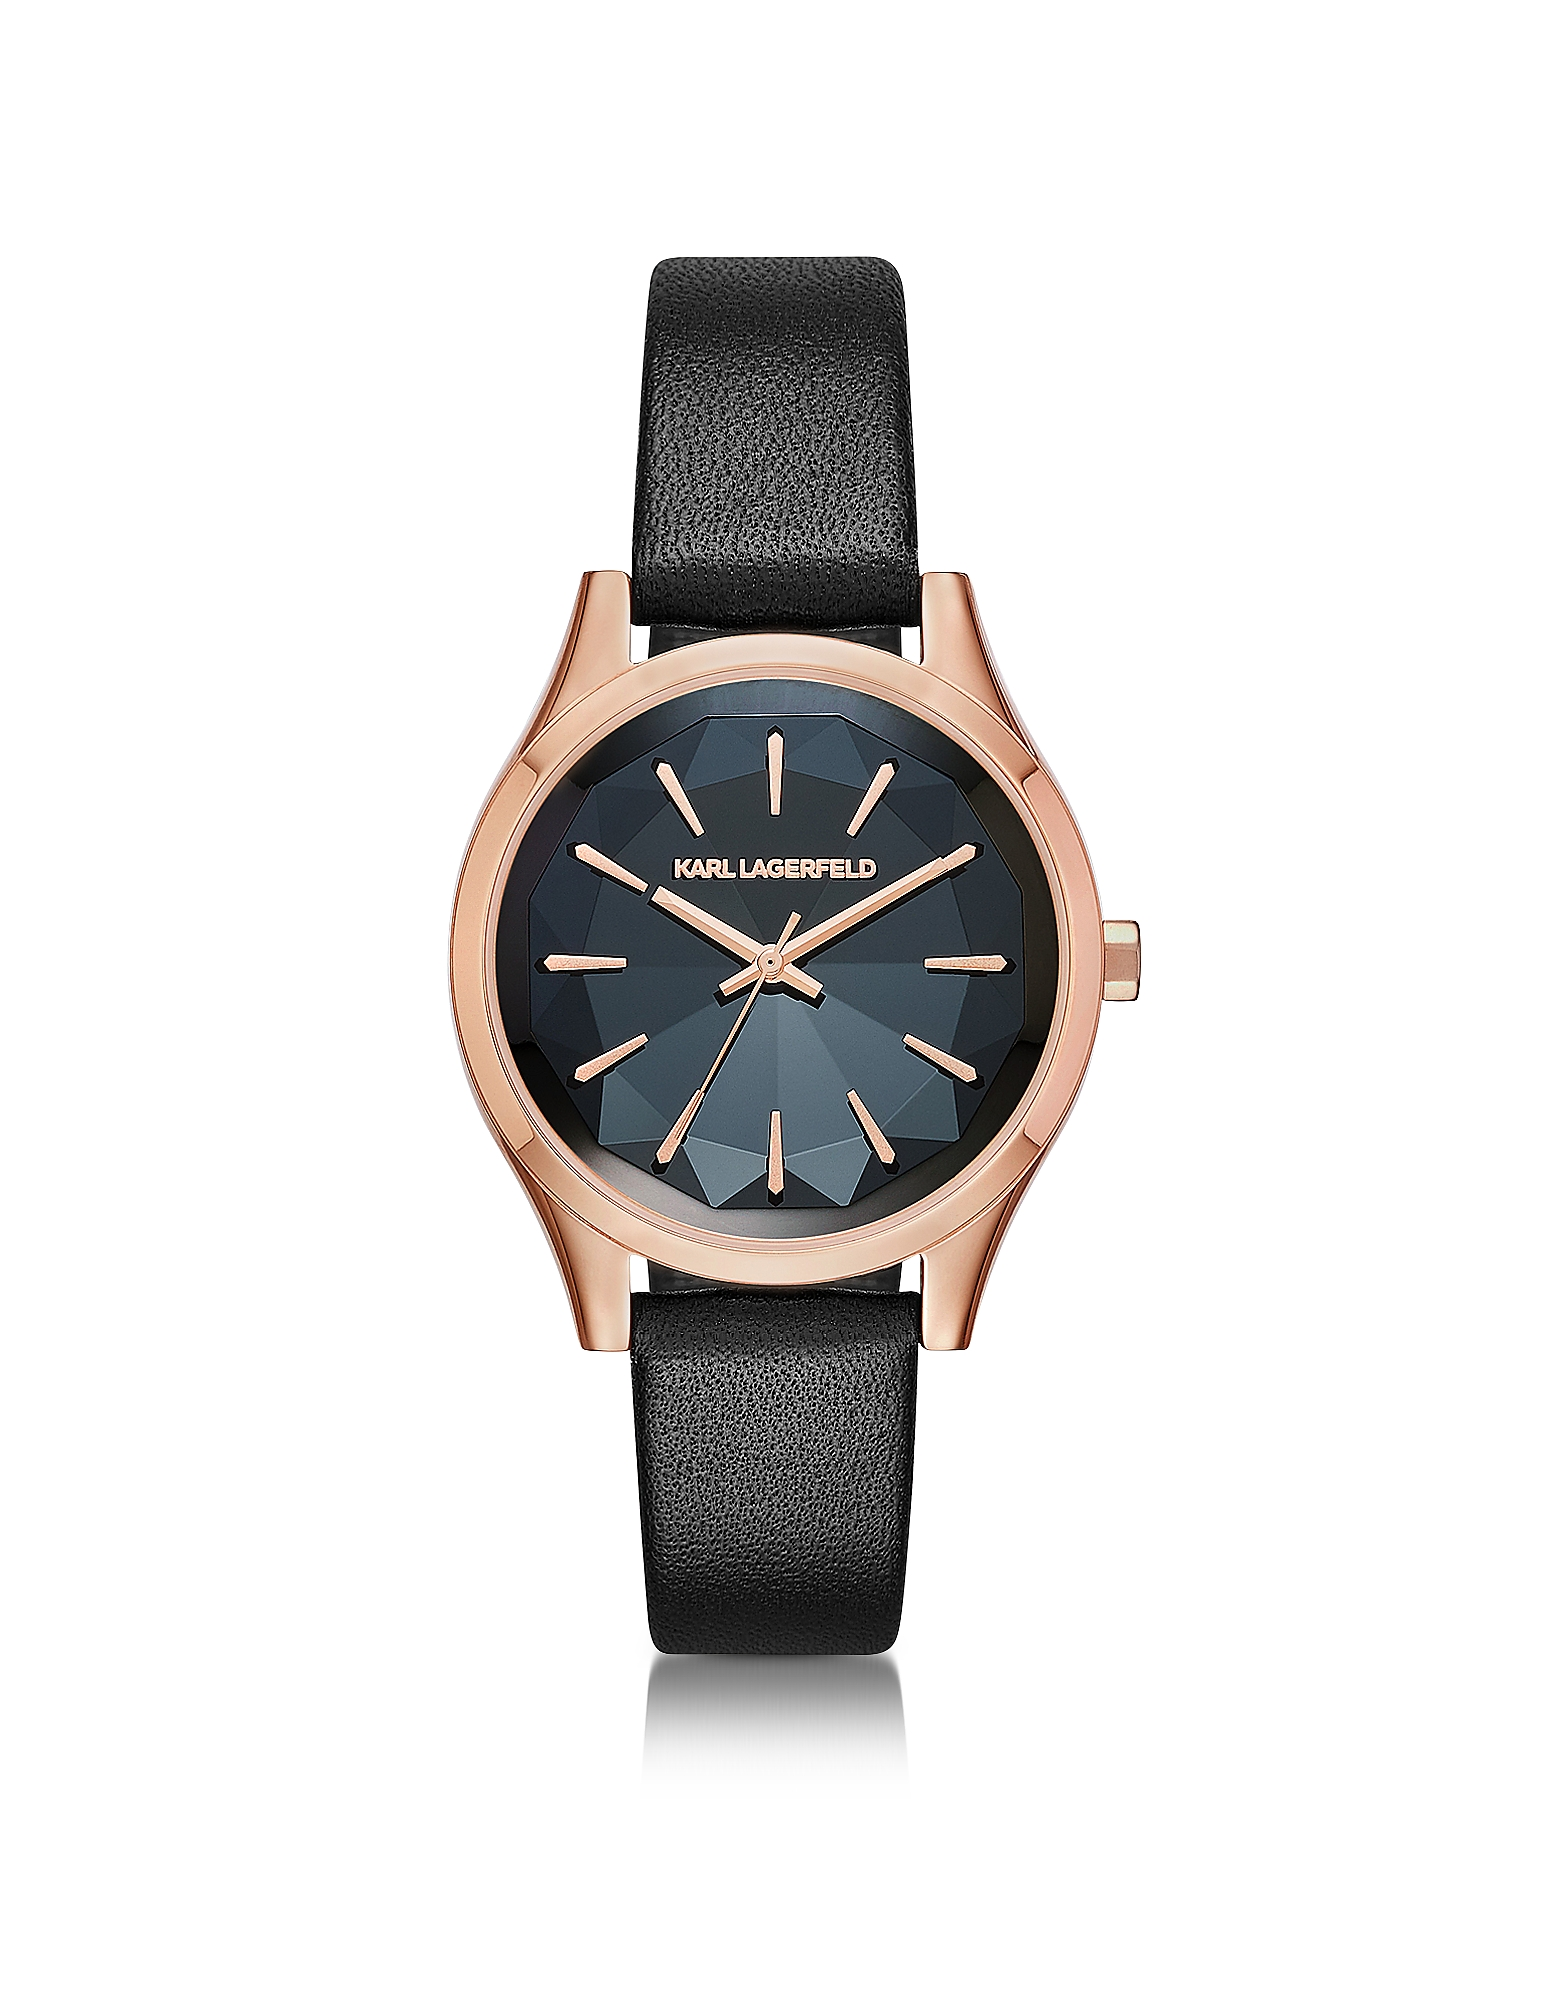 Karl Lagerfeld Women's Watches, Janelle Rose Gold-tone PVD Stainless Steel Women's Quartz Watch w/Bl